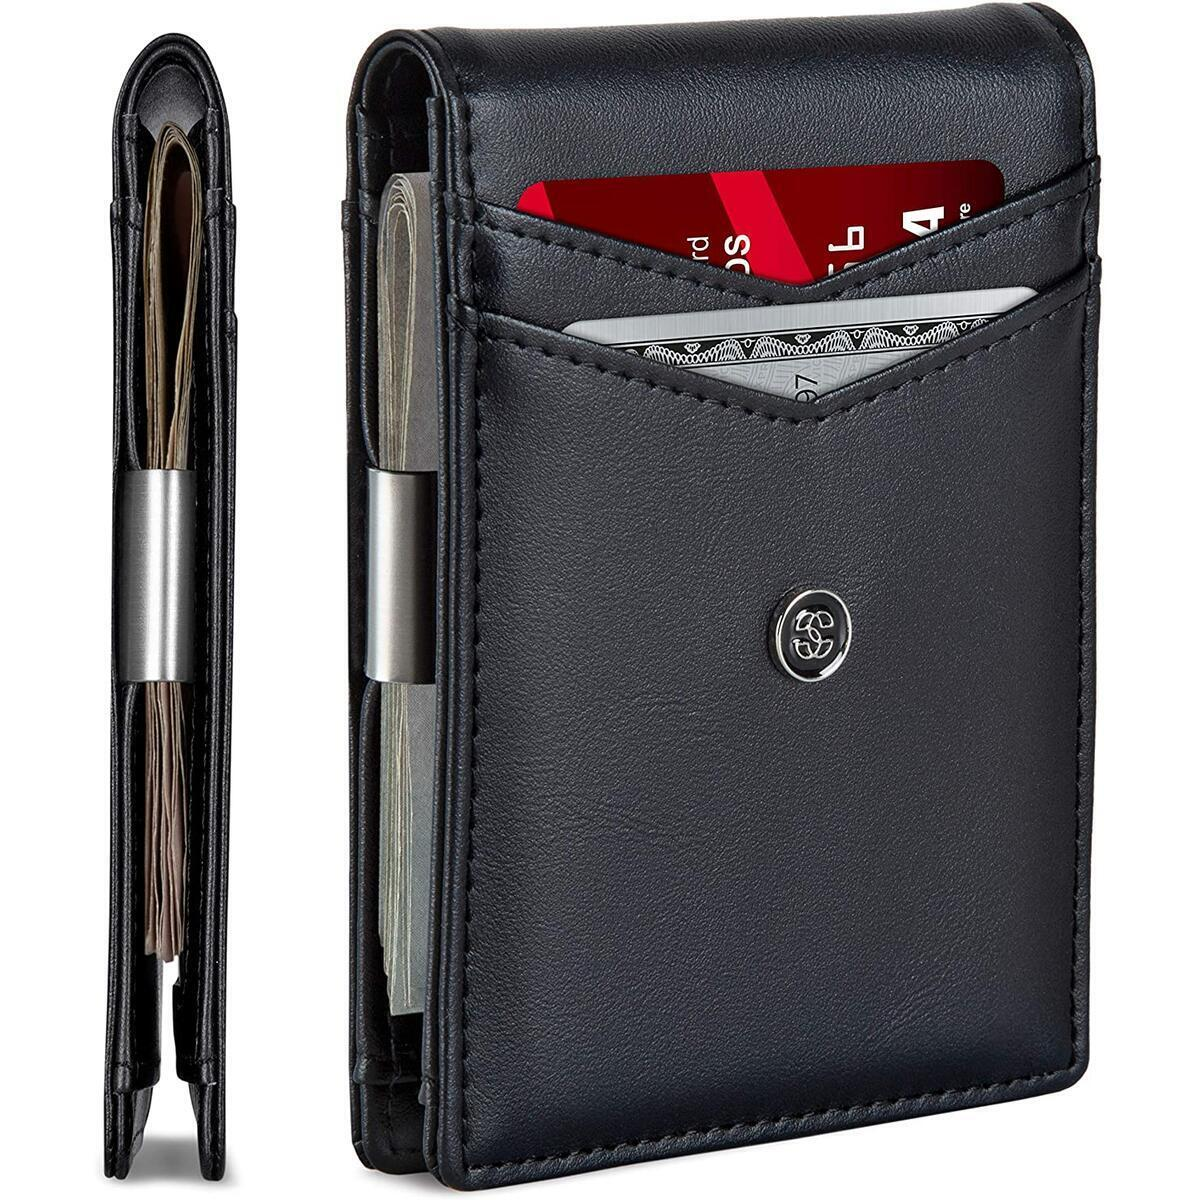 SUAVELL Leather Slim Wallets for Men. Wallet Card Holder with Money Clip. Low Profile RFID Wallet Minimalist Wallet - Obsidian Black